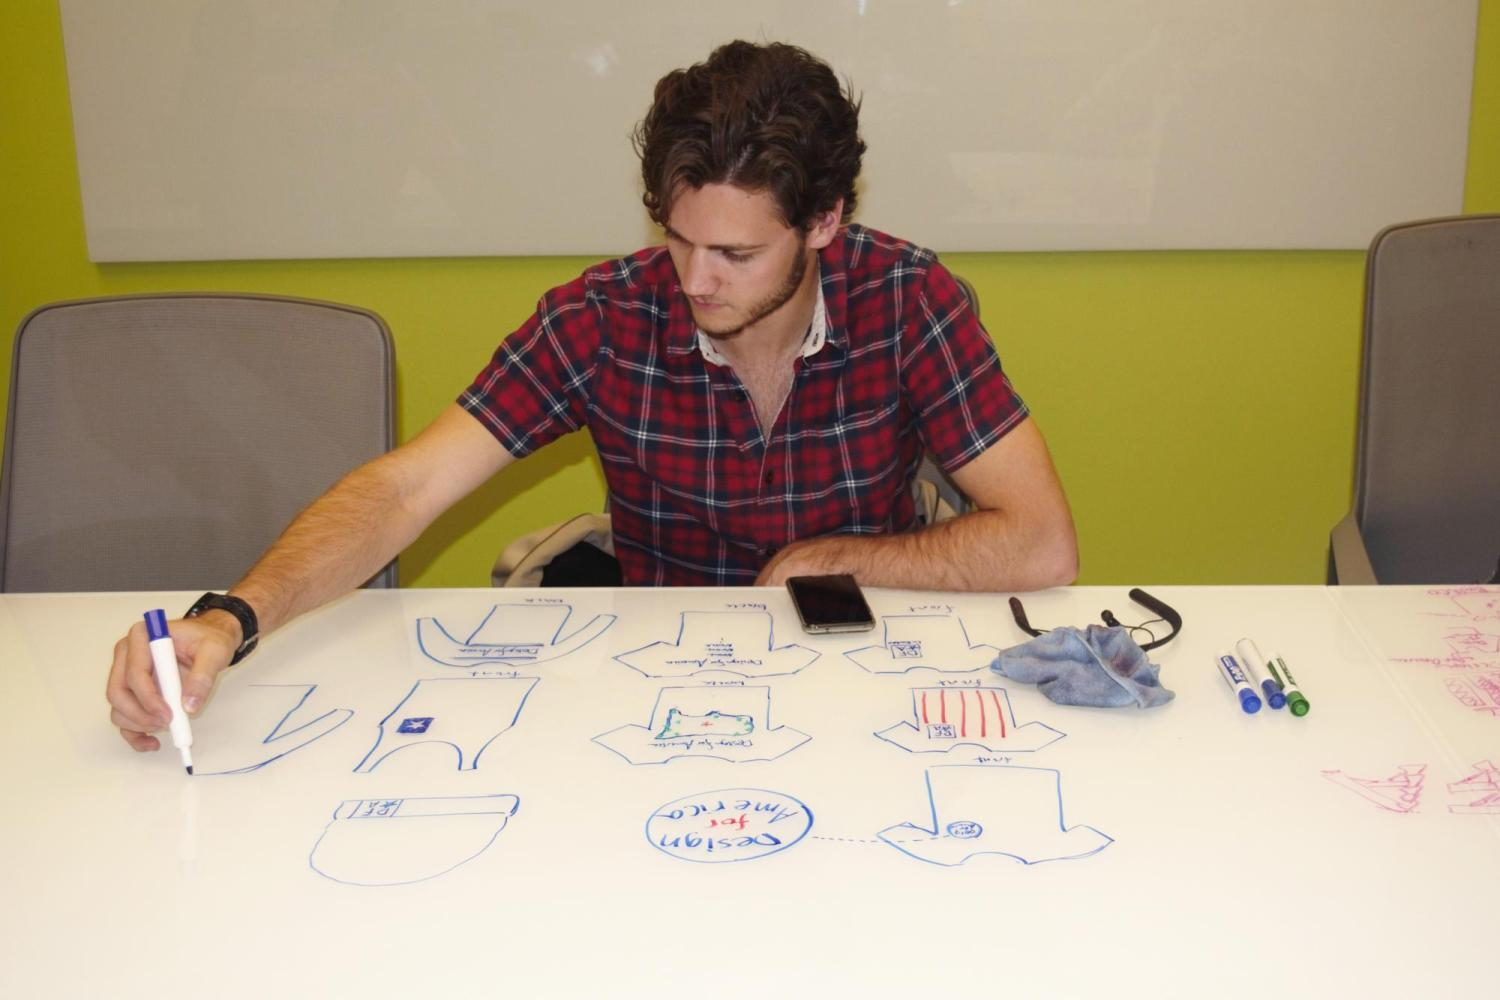 Design for America student sketches ideas on dry erase board